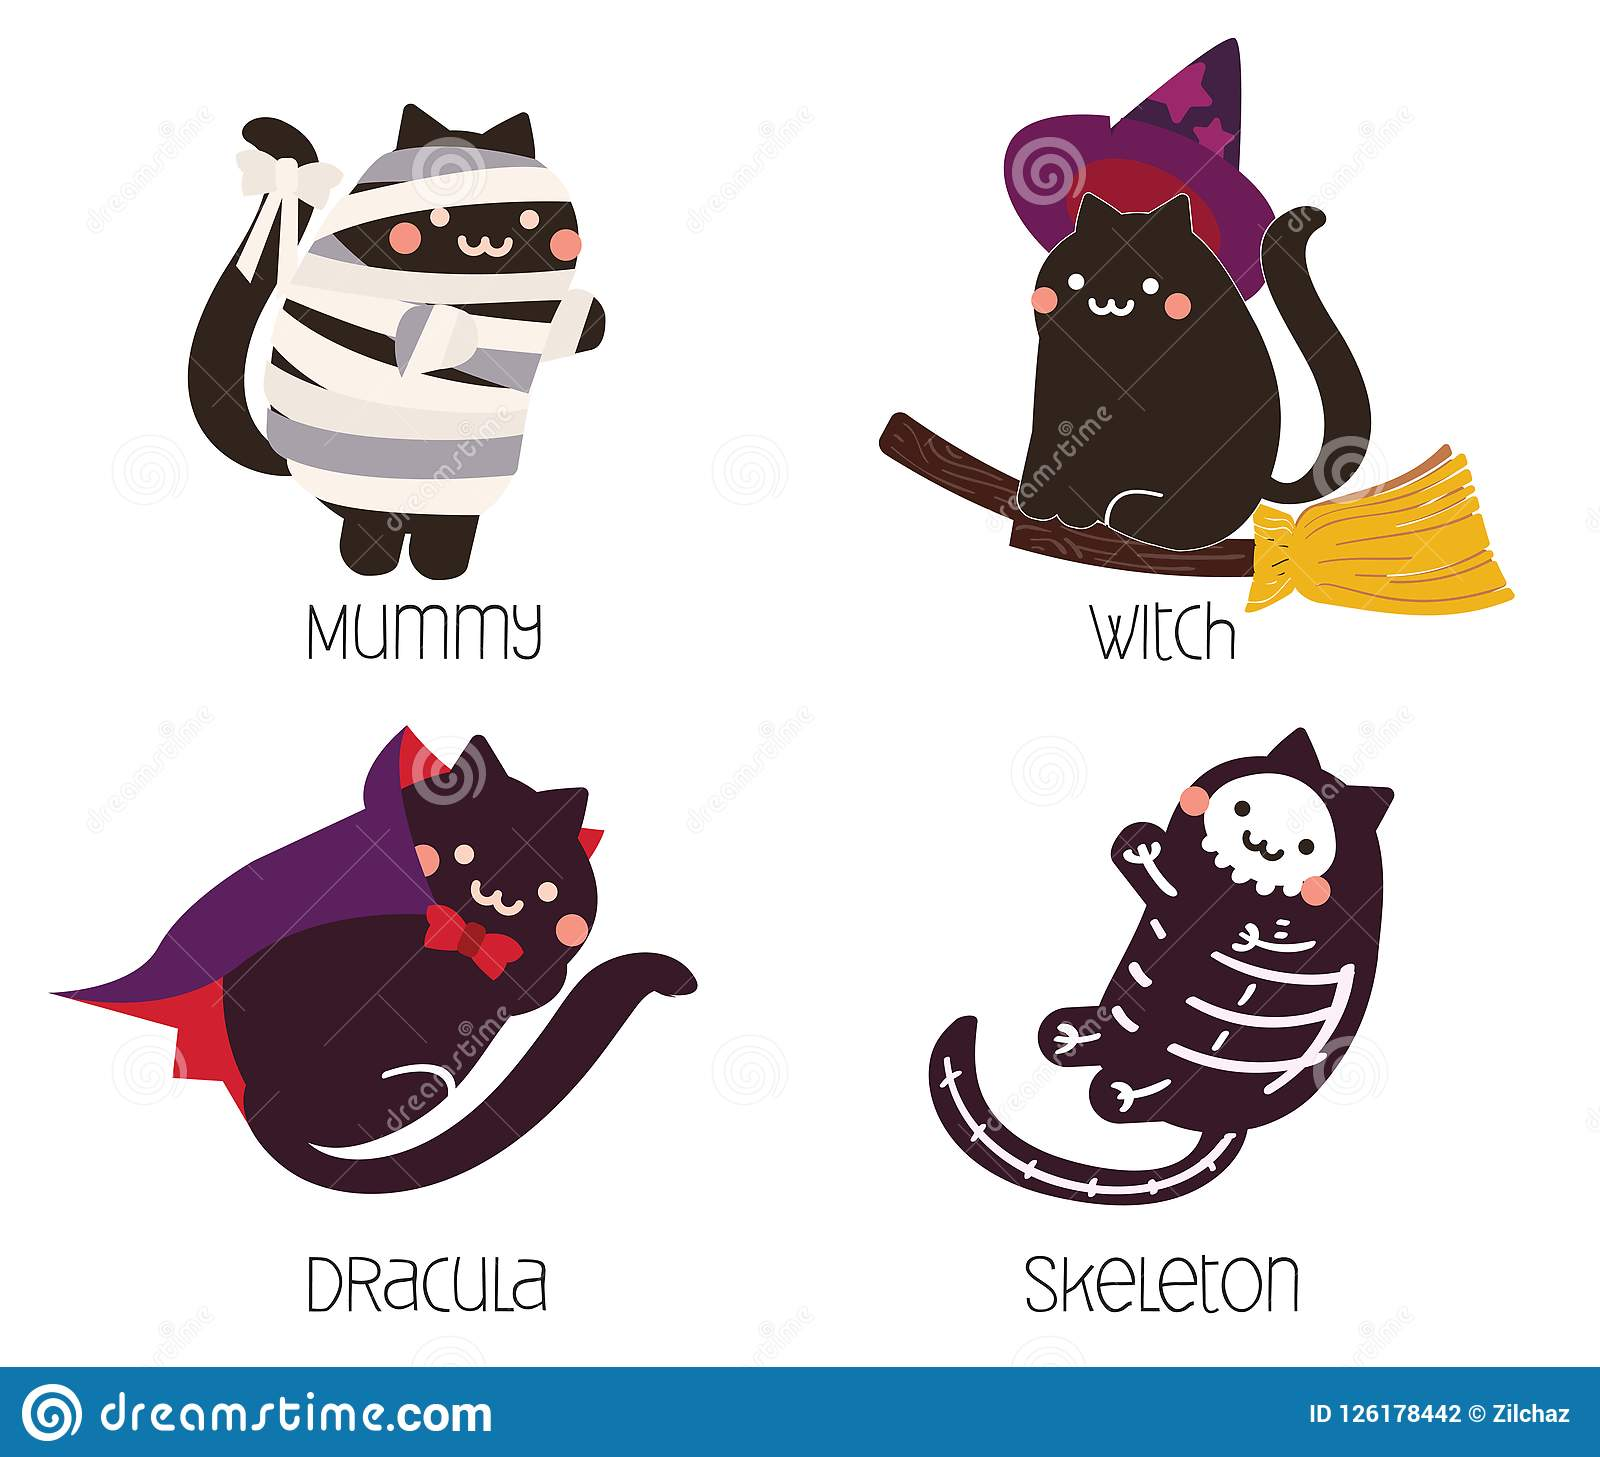 cute black cat in halloween costume; mummy, witch, dracula, skeleton